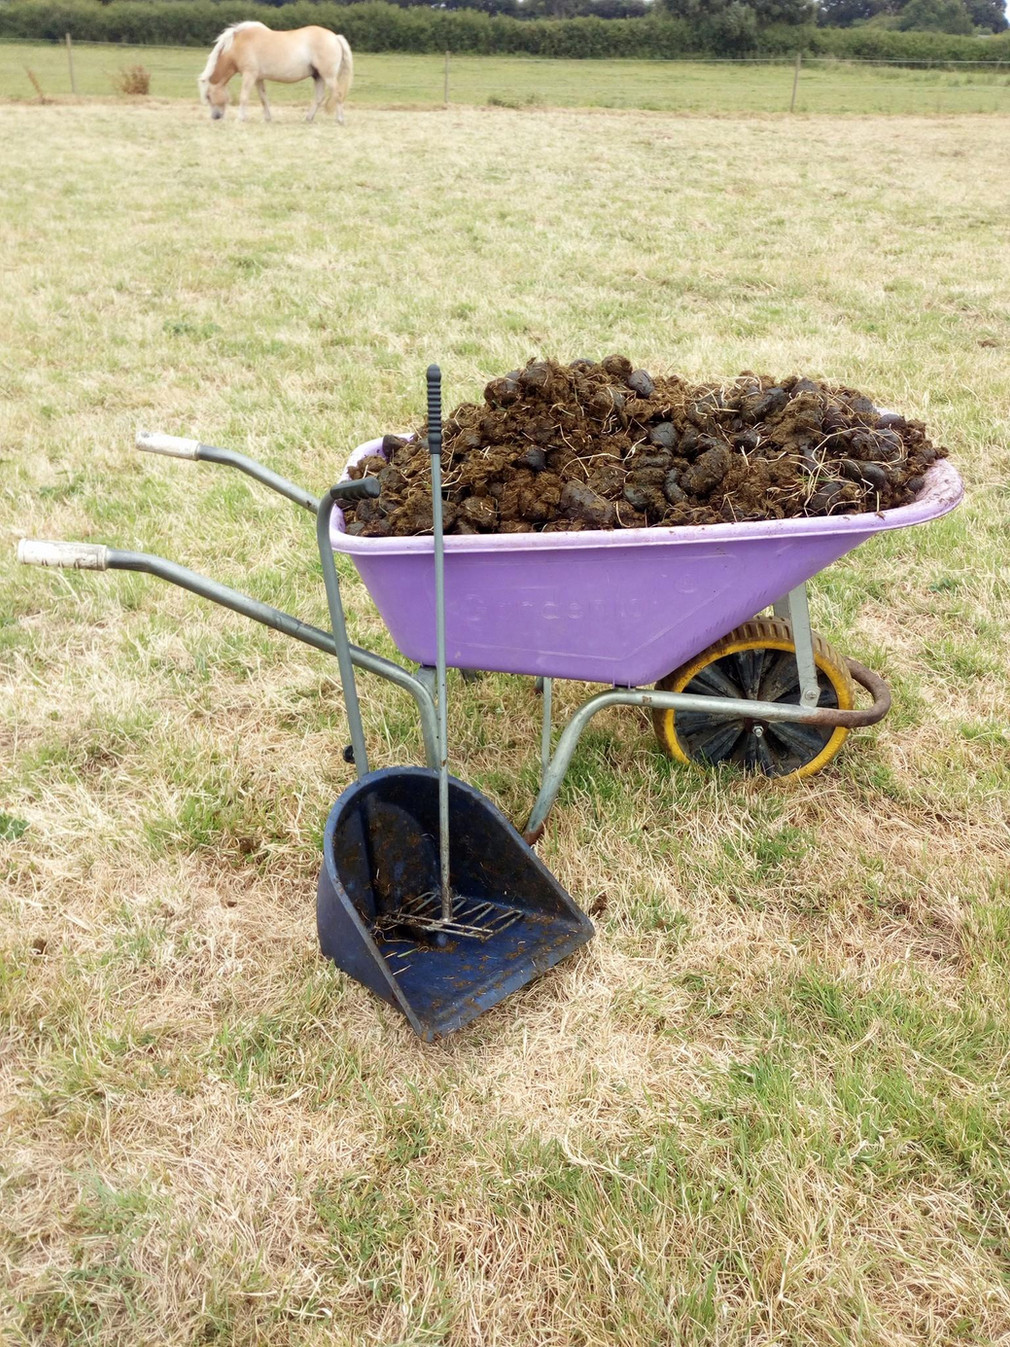 When you don't think you can get anymore poo in the wheelbarrow #horse care